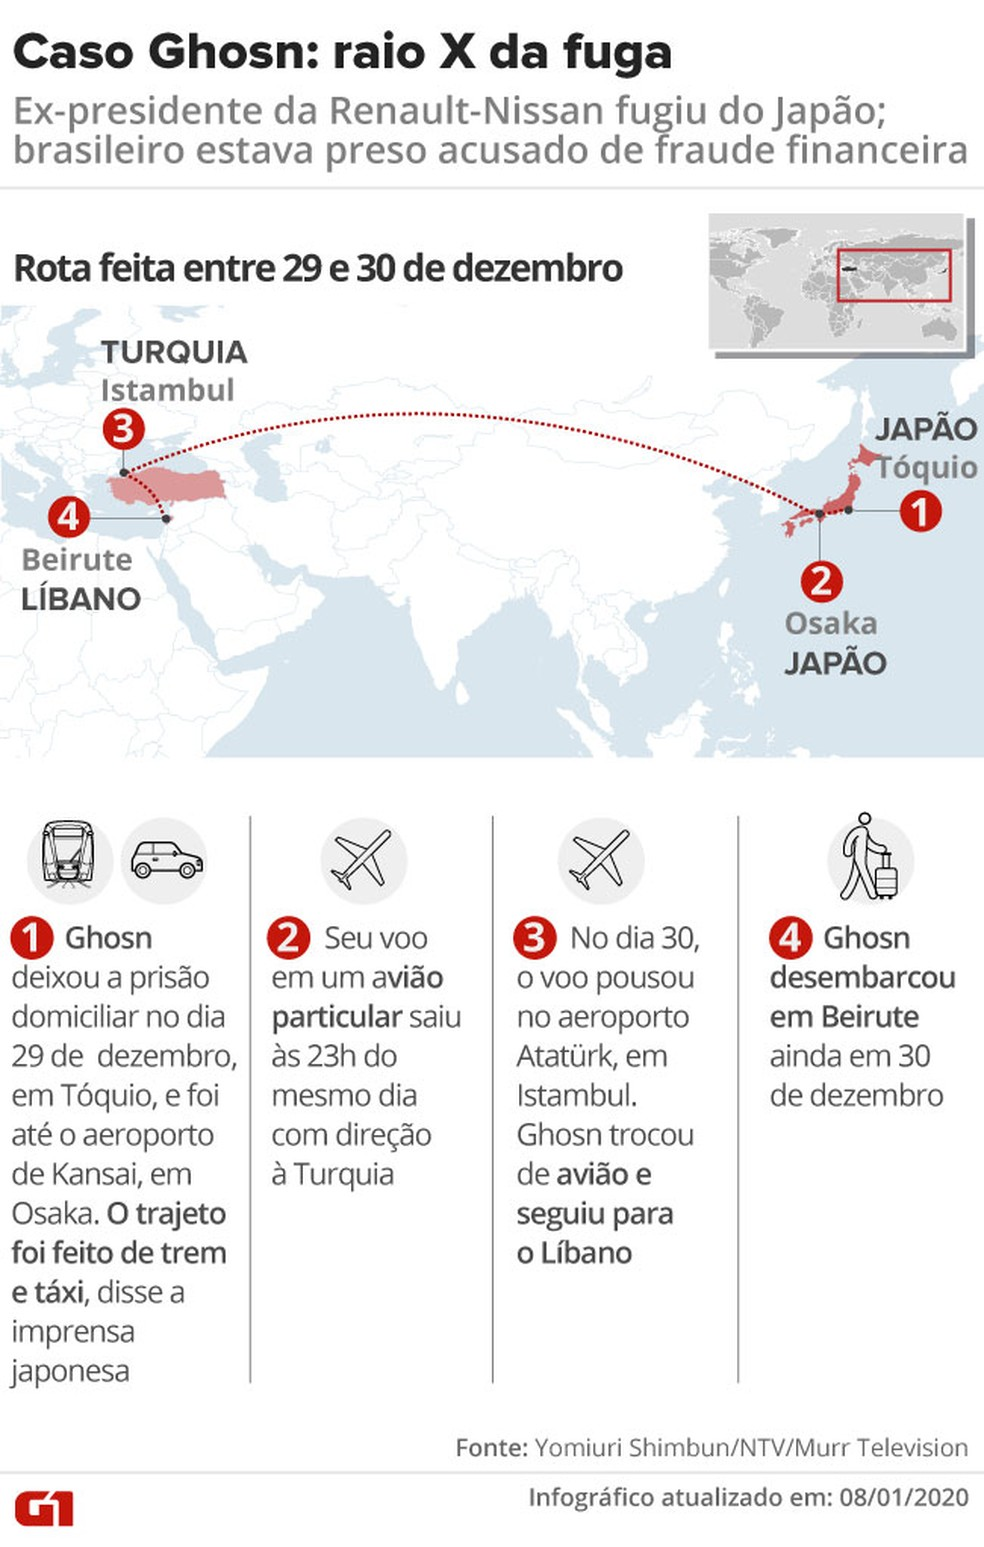 Details about Carlos Ghosn's escape from Japan - Photo: Aparecido Gonçalves / Rafael Miotto / G1